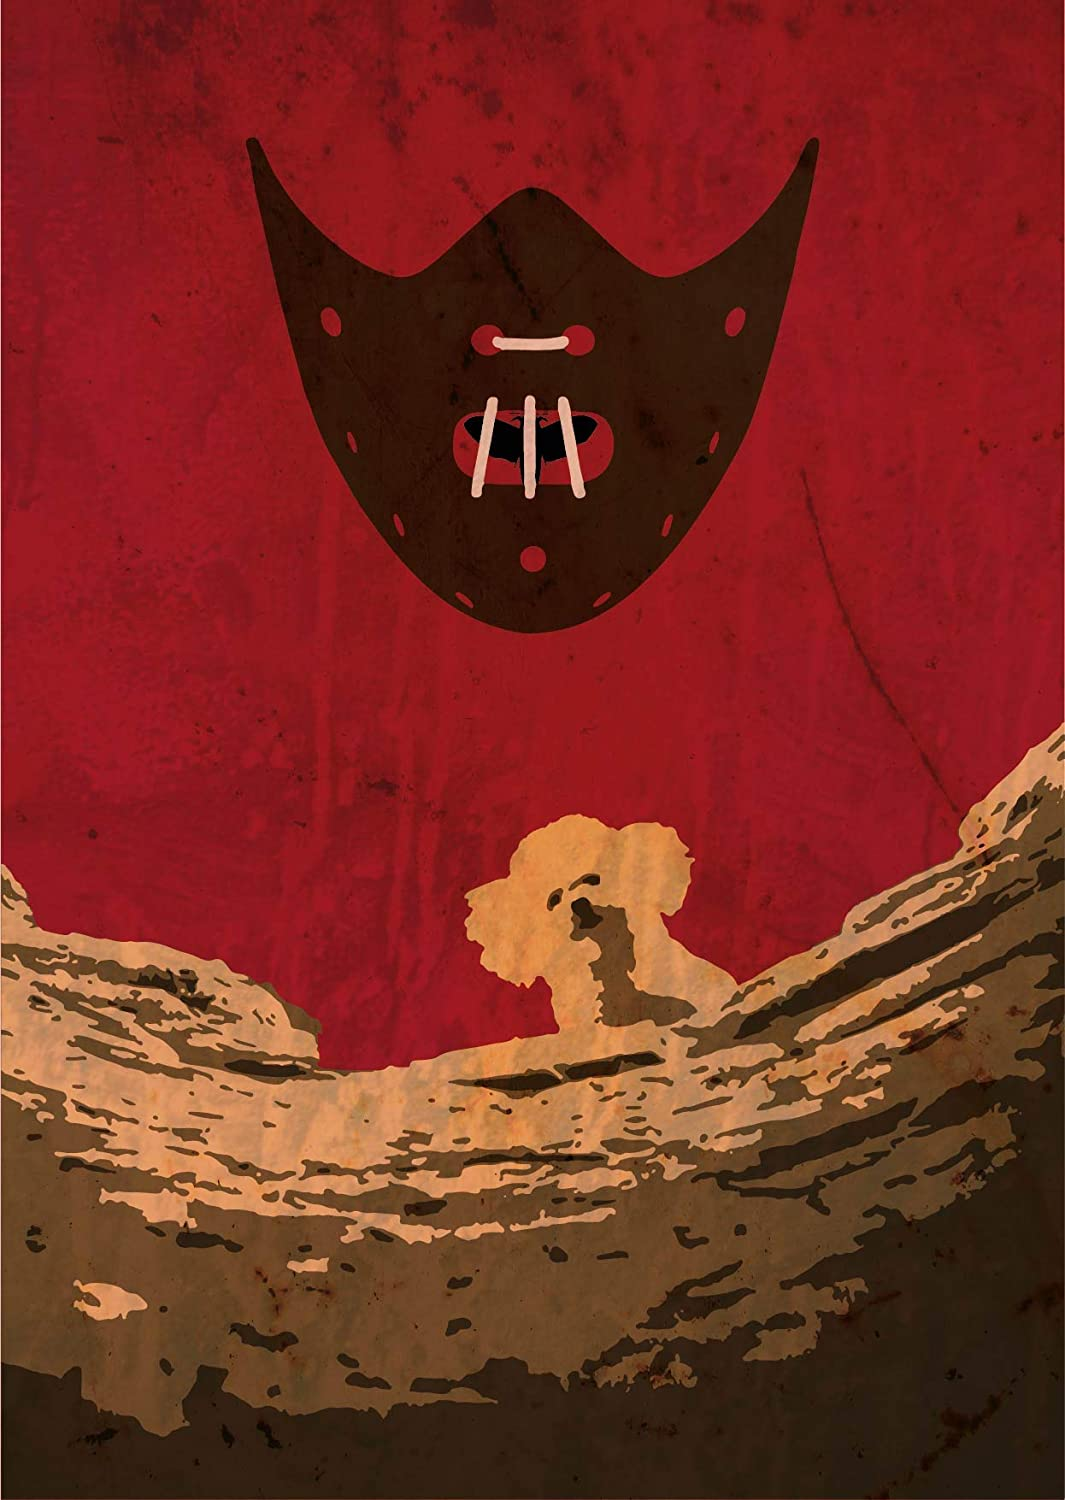 The Silence of the Lambs alternative poster 2 - thescriptblog.com